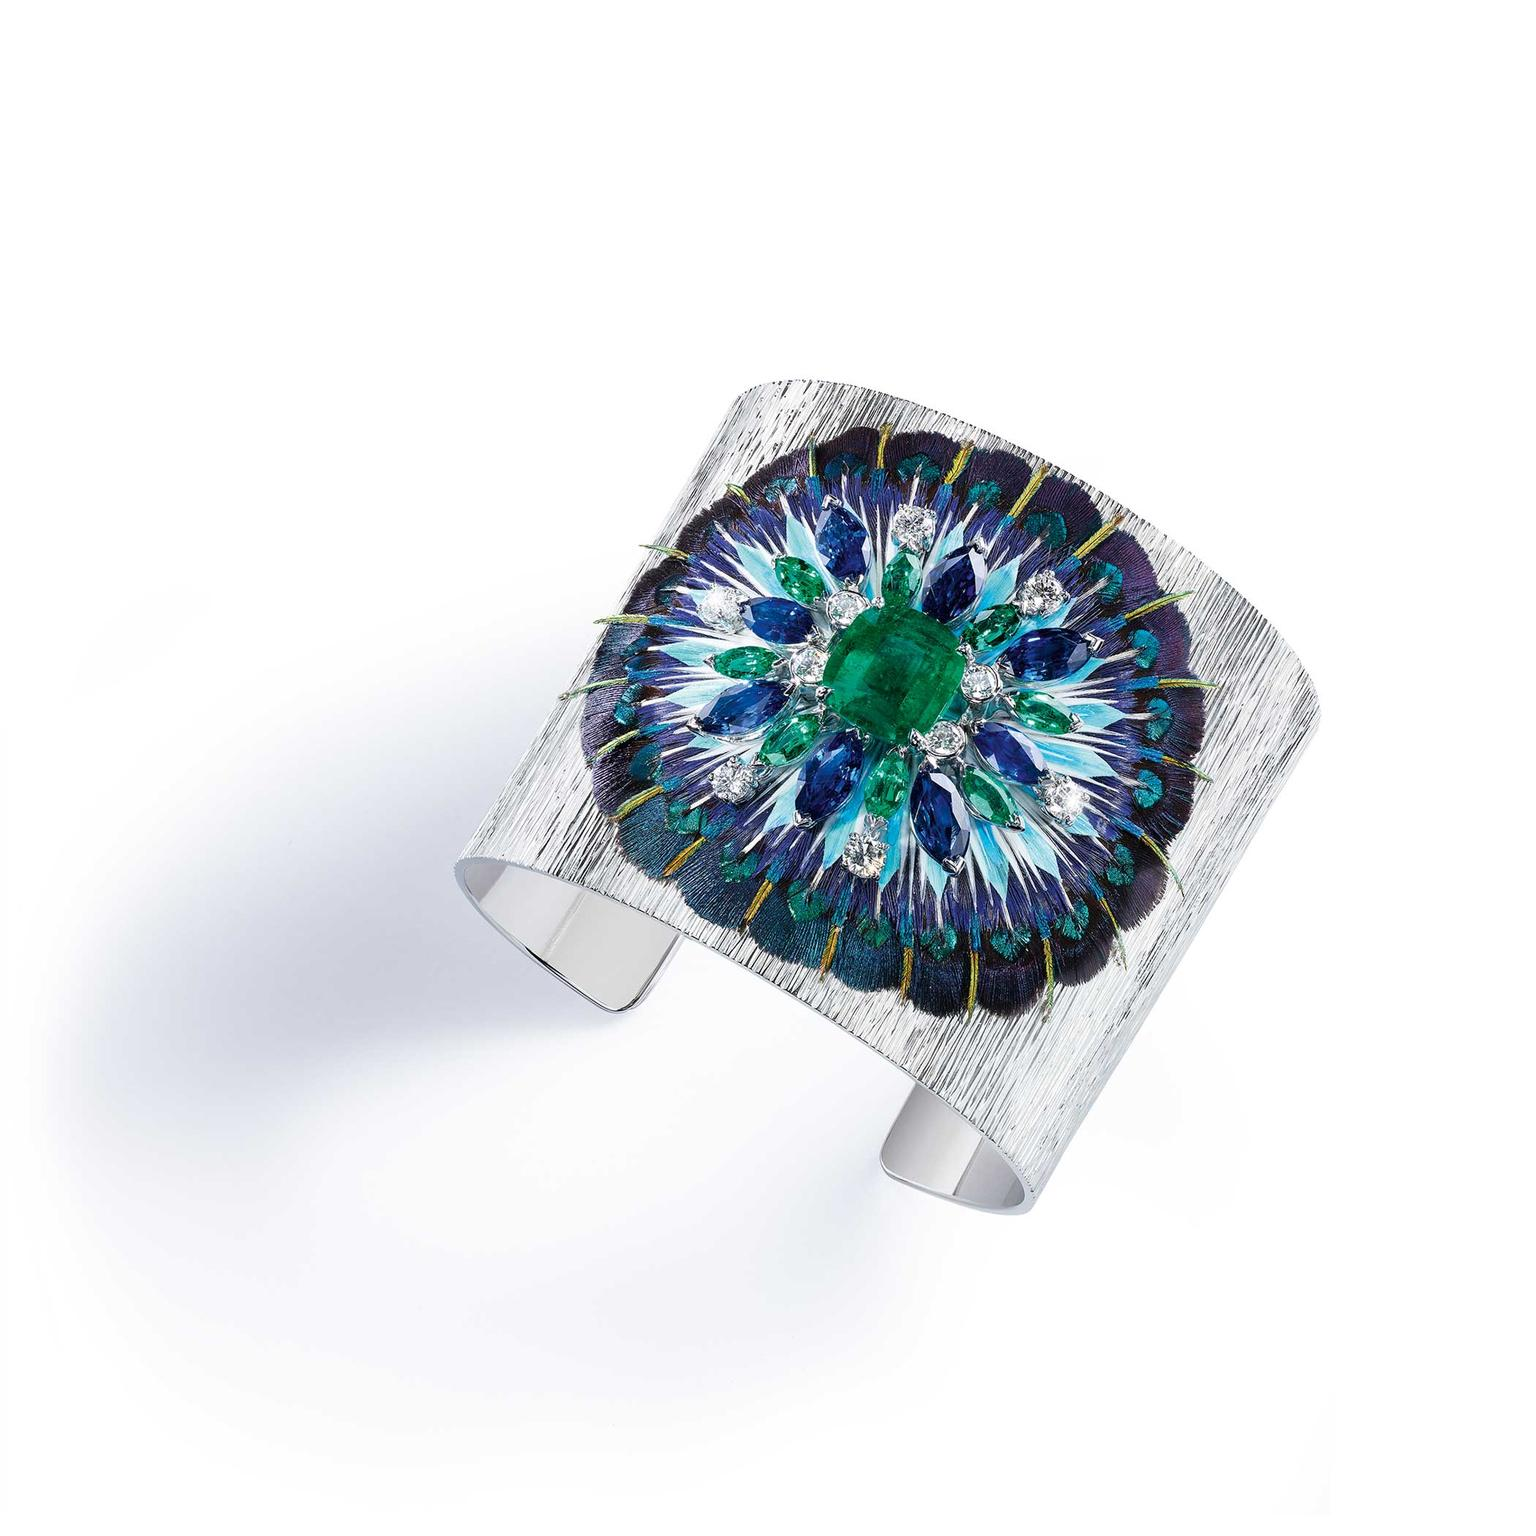 Piaget Serenissima cuff with emeralds, sapphires and diamonds on a bed of feathers